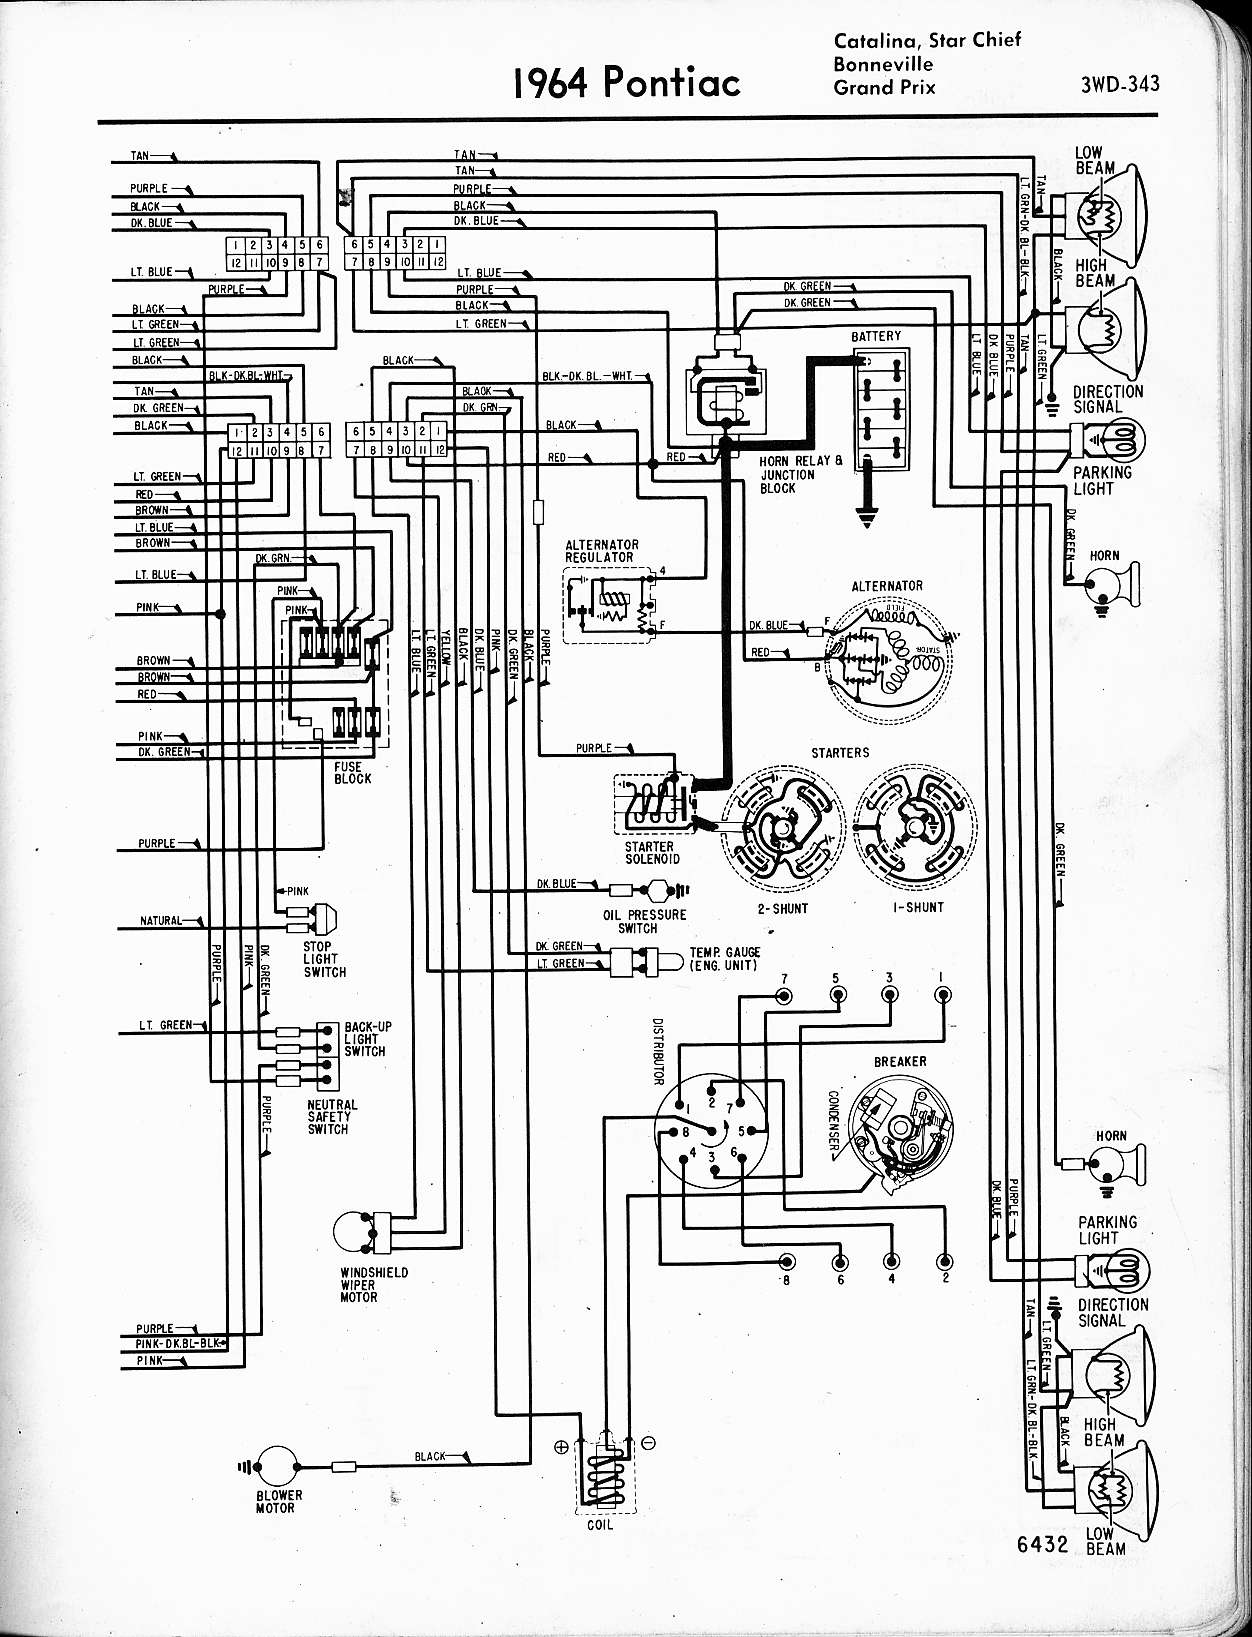 1976 firebird wiring diagram - ford l9000 wiper wiring diagram -  hinoengine.sususehat.decorresine.it  wiring diagram resource